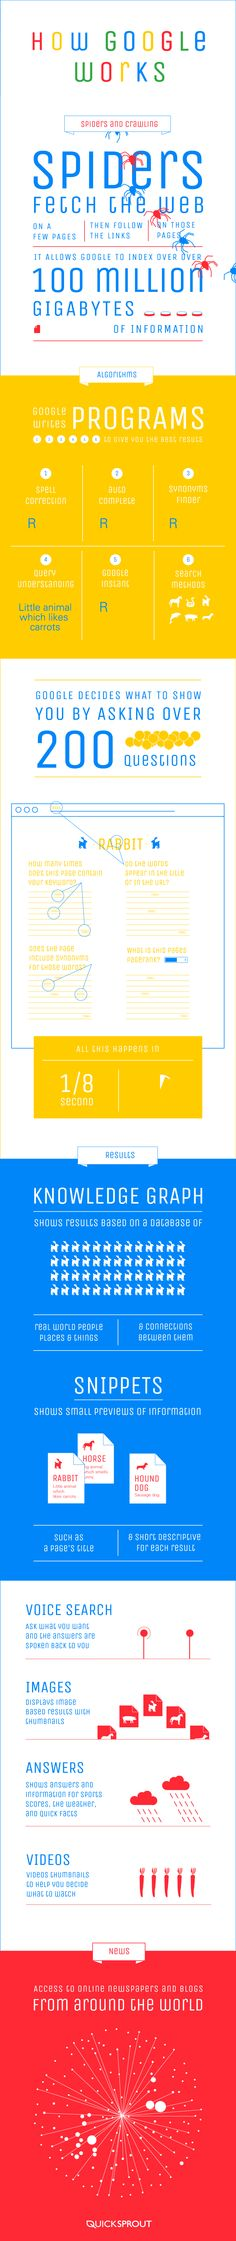 How #Google Actually Works #Infographic